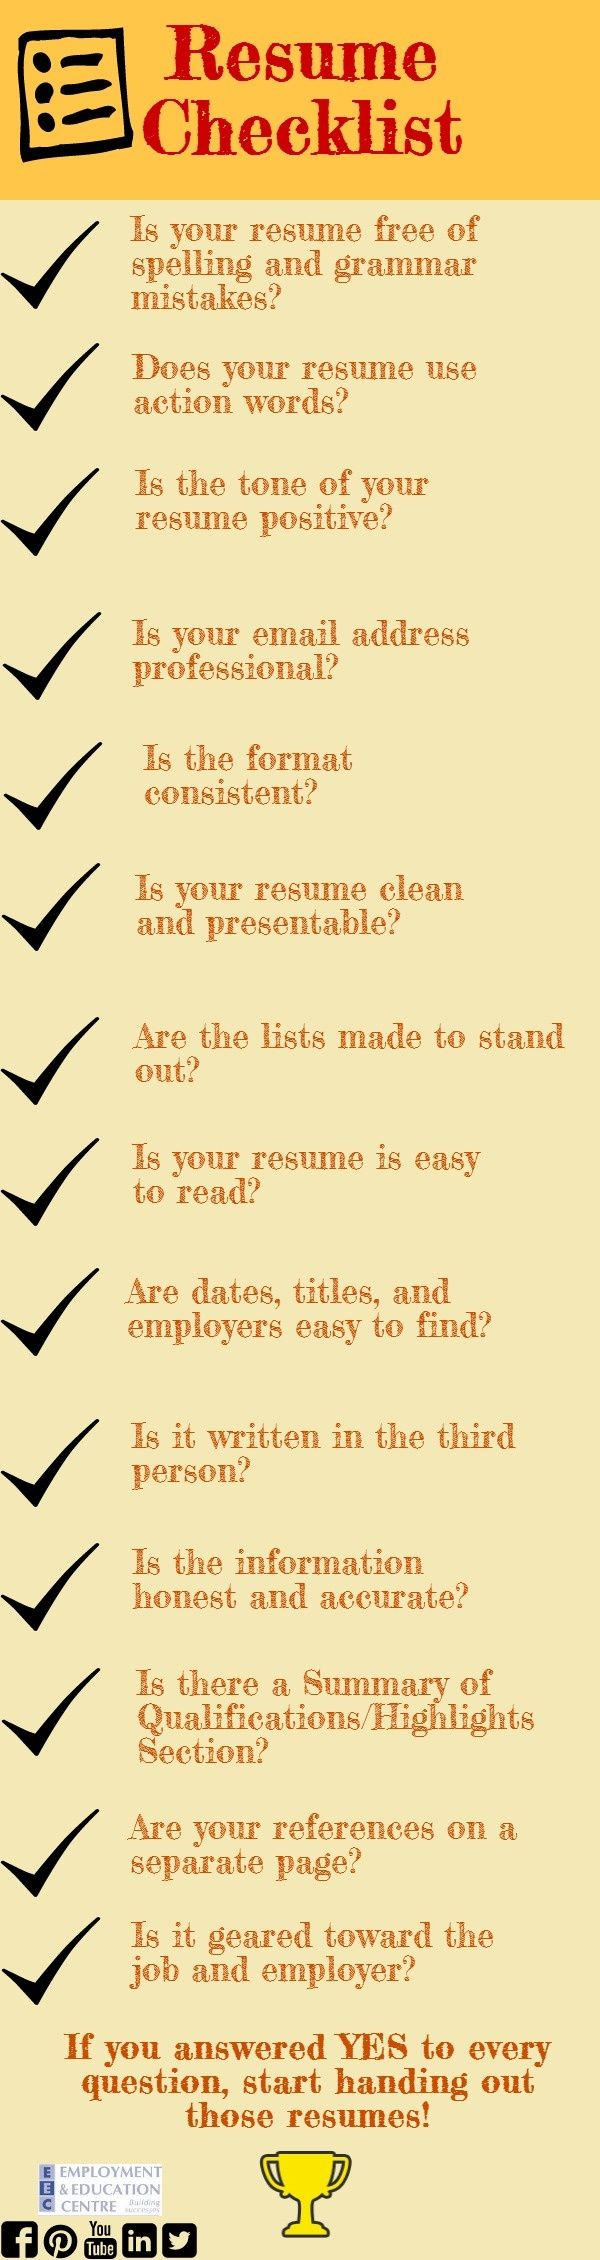 winning resume writing top do s and don ts interview offices check out this list before you hand out your resume resumetips jobsearchtips